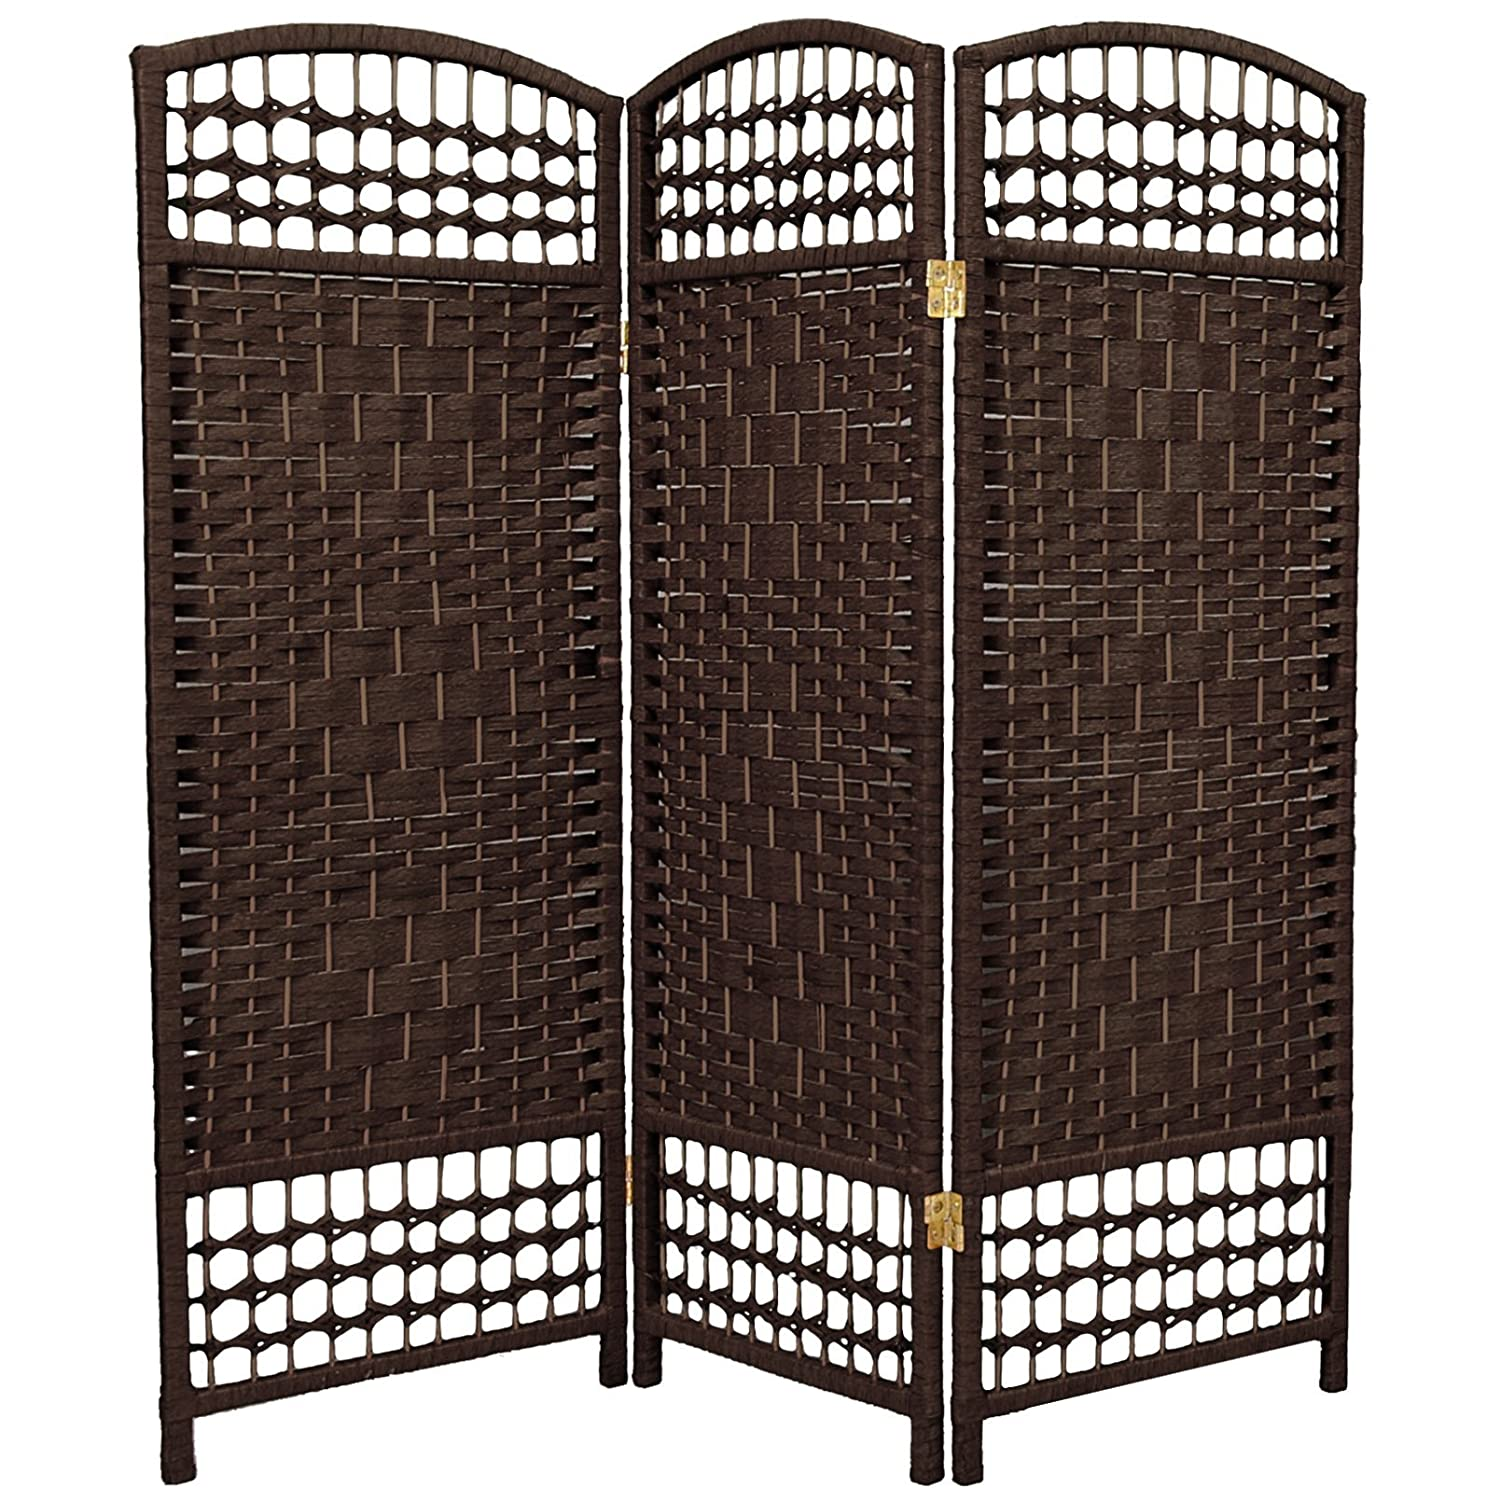 Amazoncom ORIENTAL FURNITURE 4 ft Tall Fiber Weave Room Divider